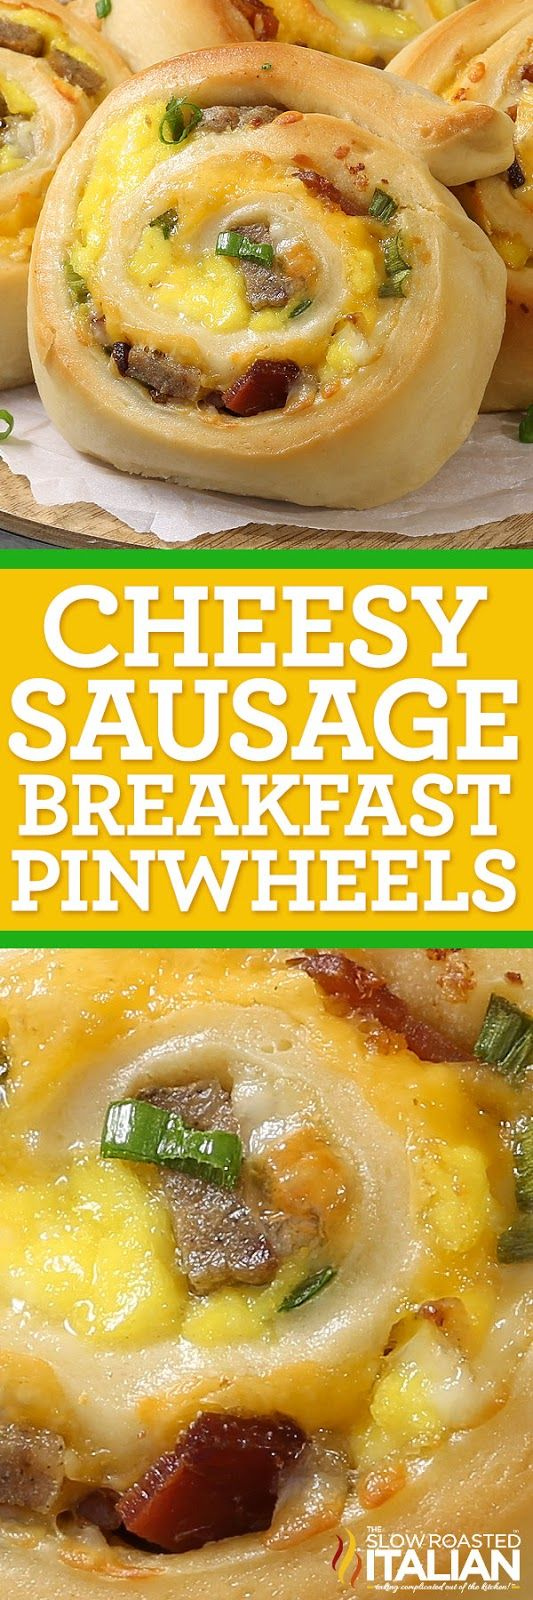 Cheesy Sausage Breakfast Pinwheels are a simple recipe made with soft and tender bread filled with your favorite breakfast fixin's. It's like unrolling a little piece of heaven loaded with smoky bacon, pork sausage, scrambled eggs and ooey gooey cheese! @JonesDairyFarm #JonesFamilyRules